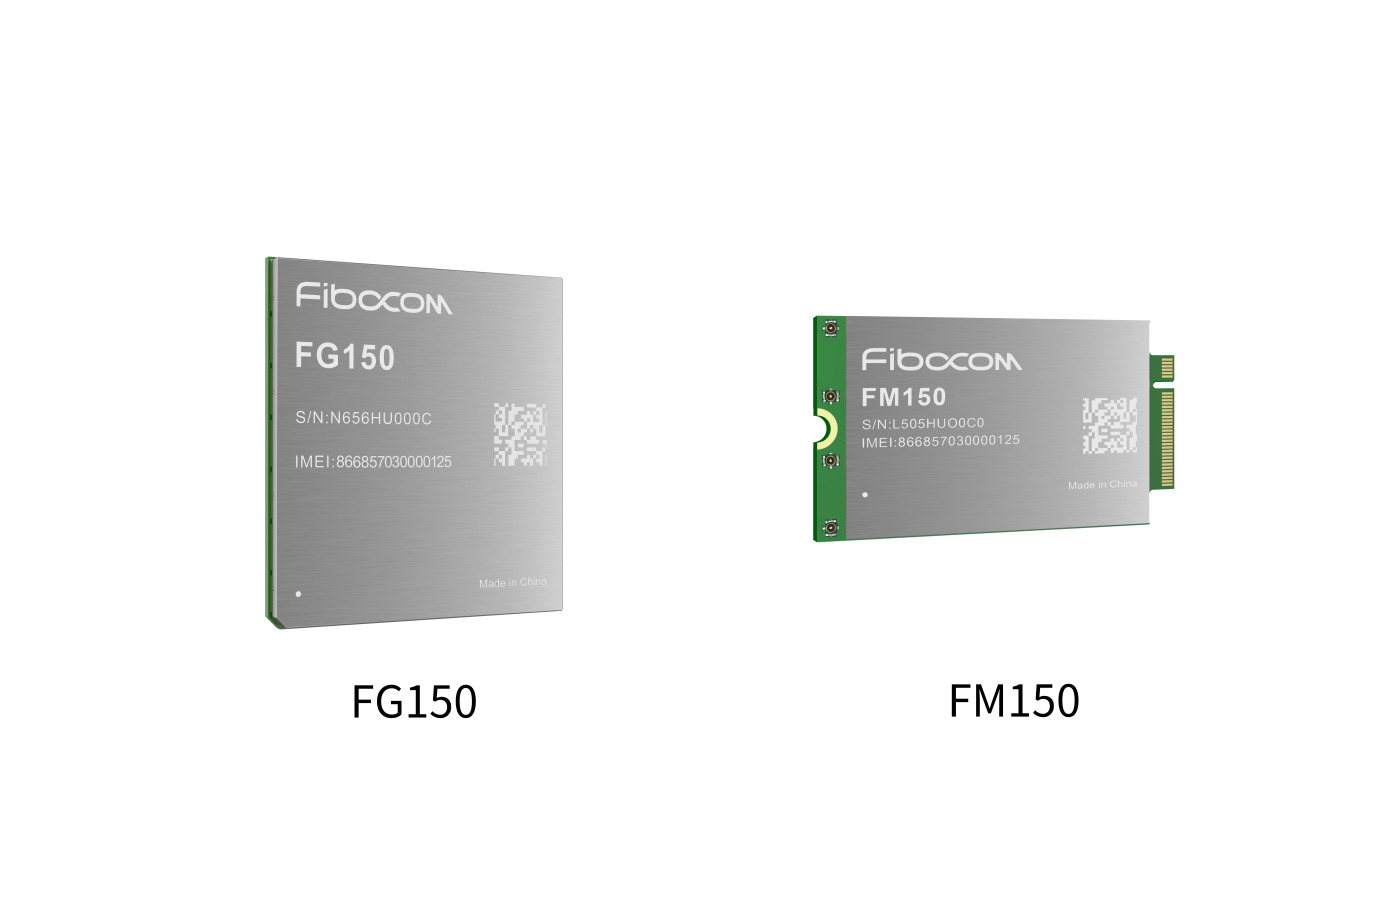 Fibocom 5G Modules & Its Empowered Real 5G Applications Solely Demonstrated at Qualcomm 5G Summit